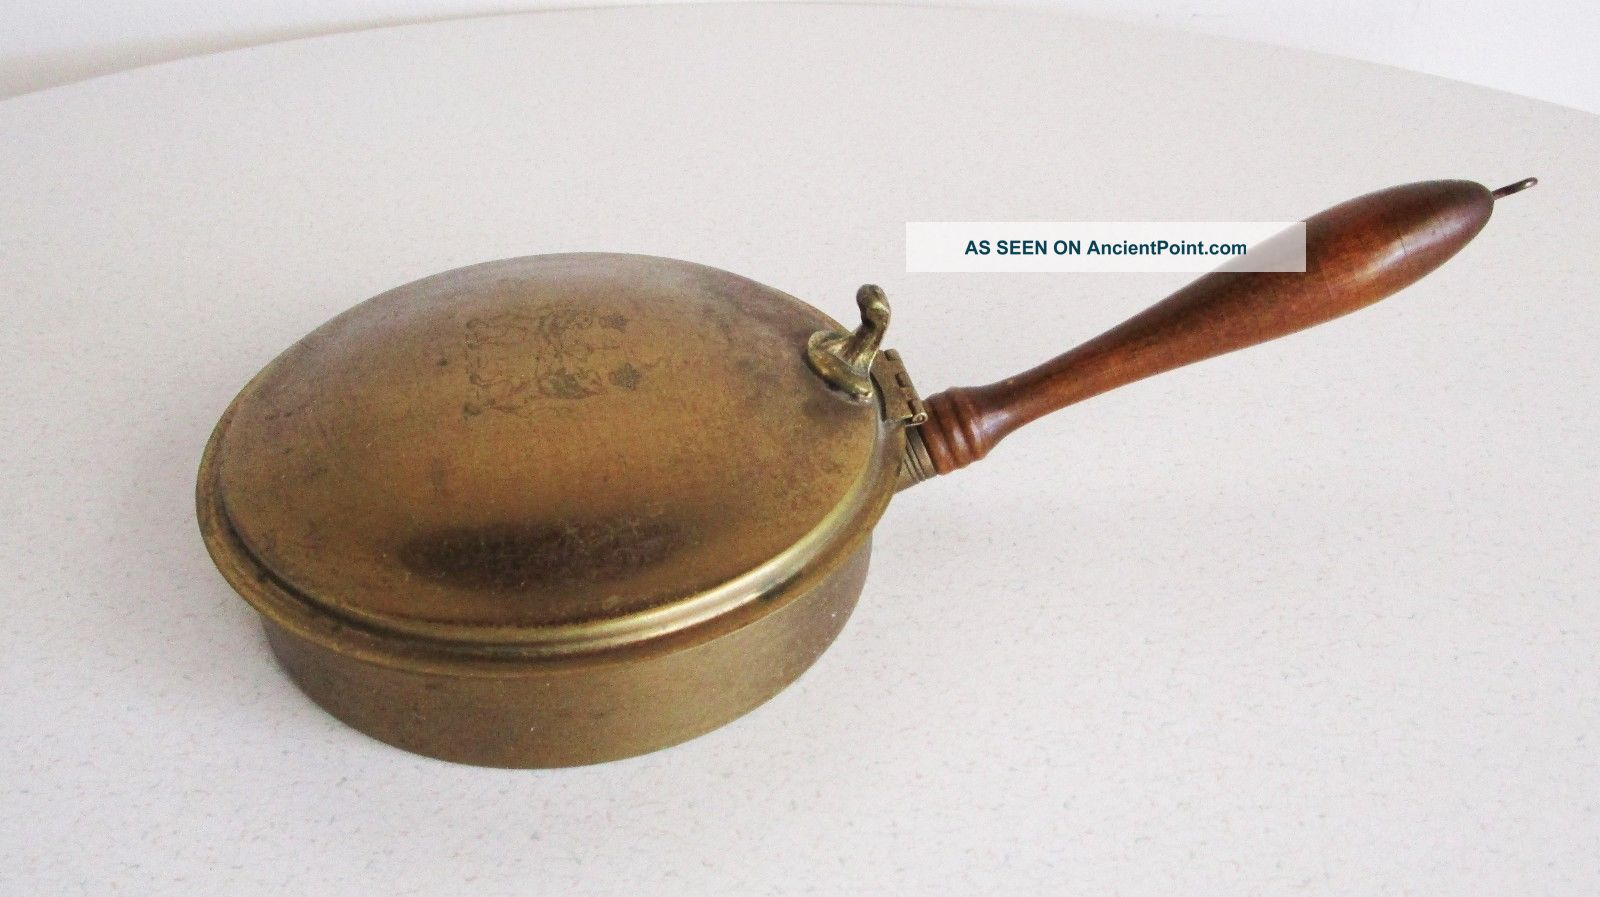 Vintage Bed Warmer Fireplace Accessory Brass Wood Handle Lion Accent Coronet Hearth Ware photo